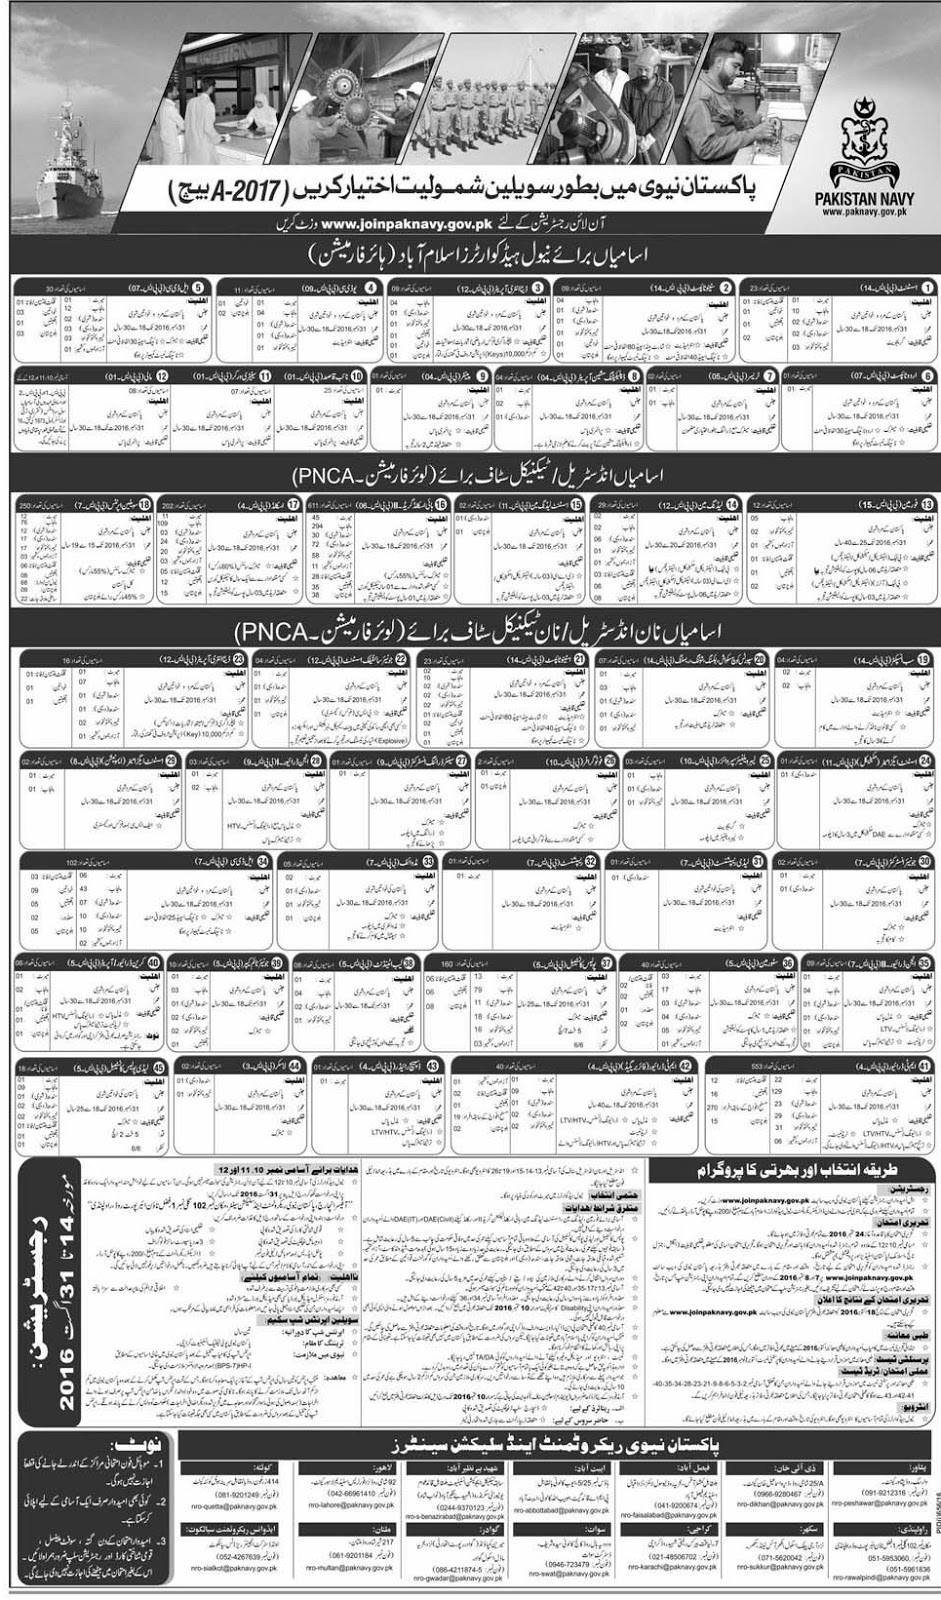 Pakistan Navy Jobs in Pakistan Join Pakistan Navy As Civilian